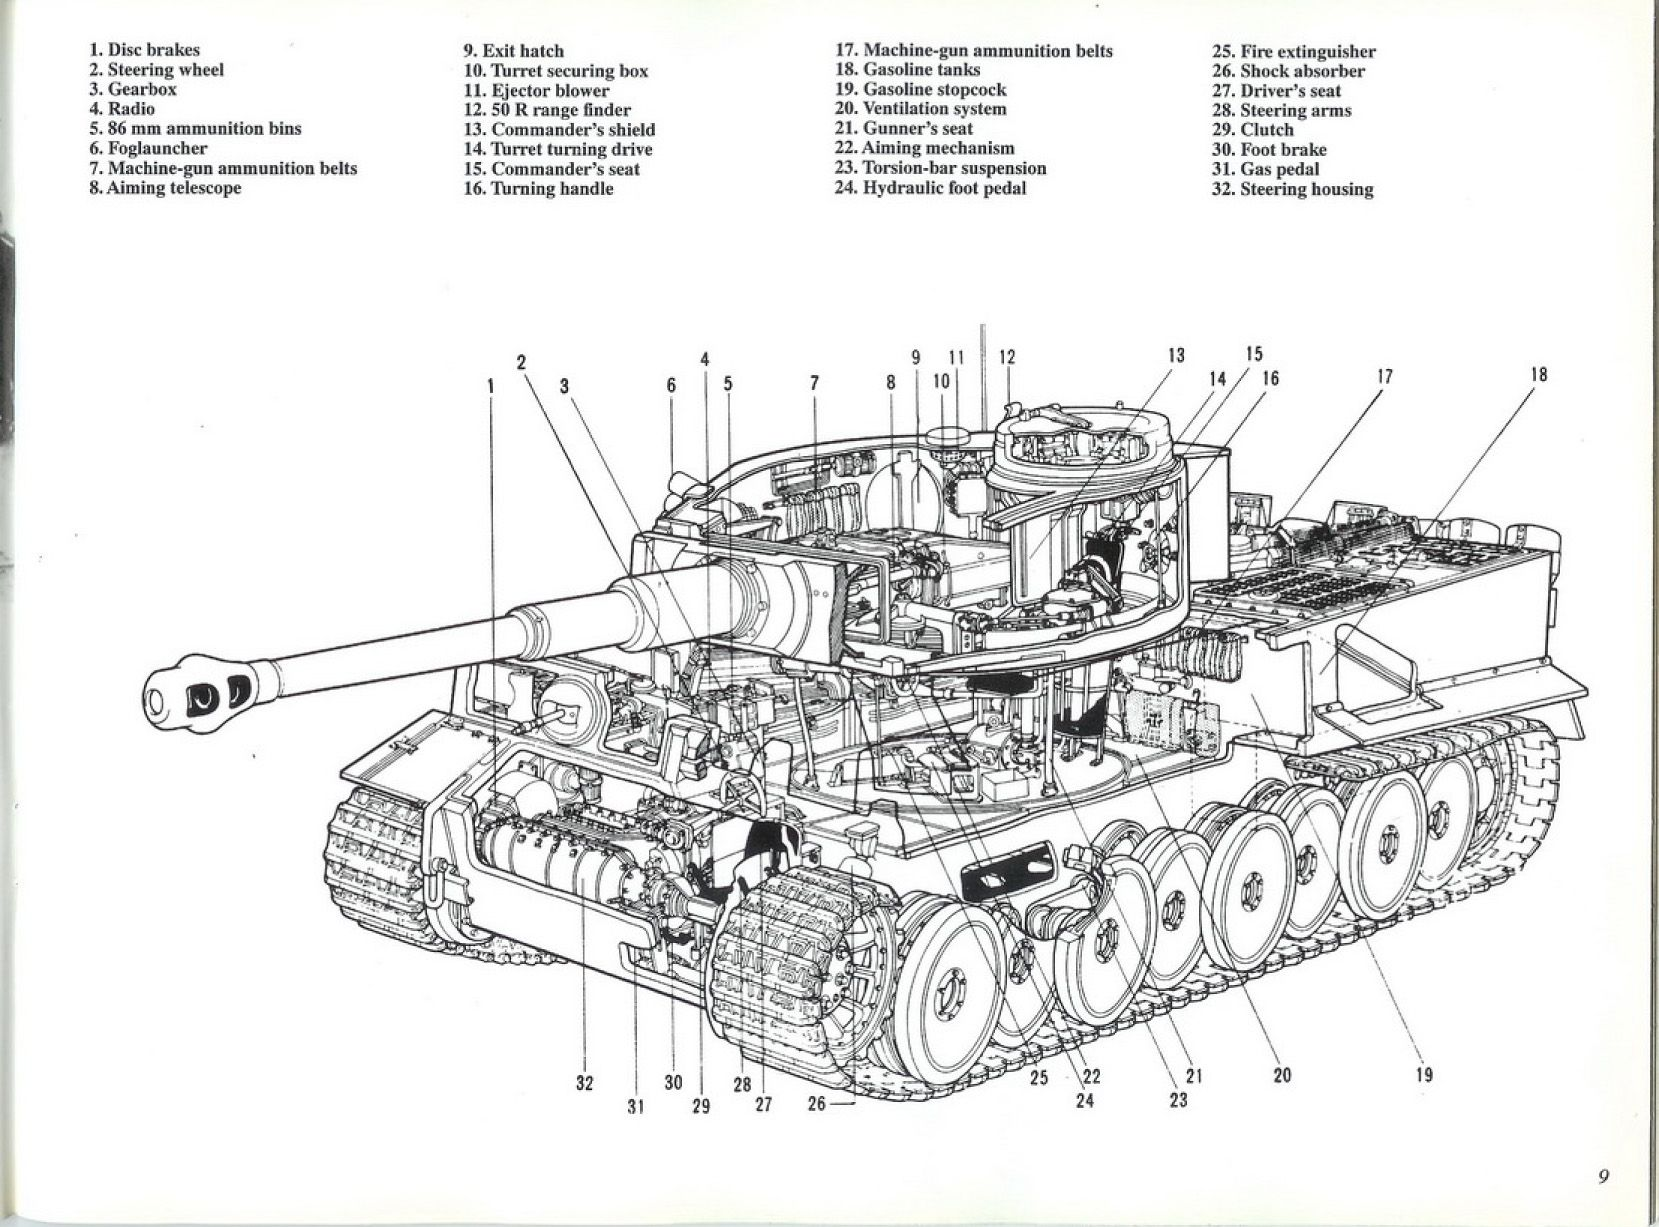 Pin On Diagrams And Cutaways